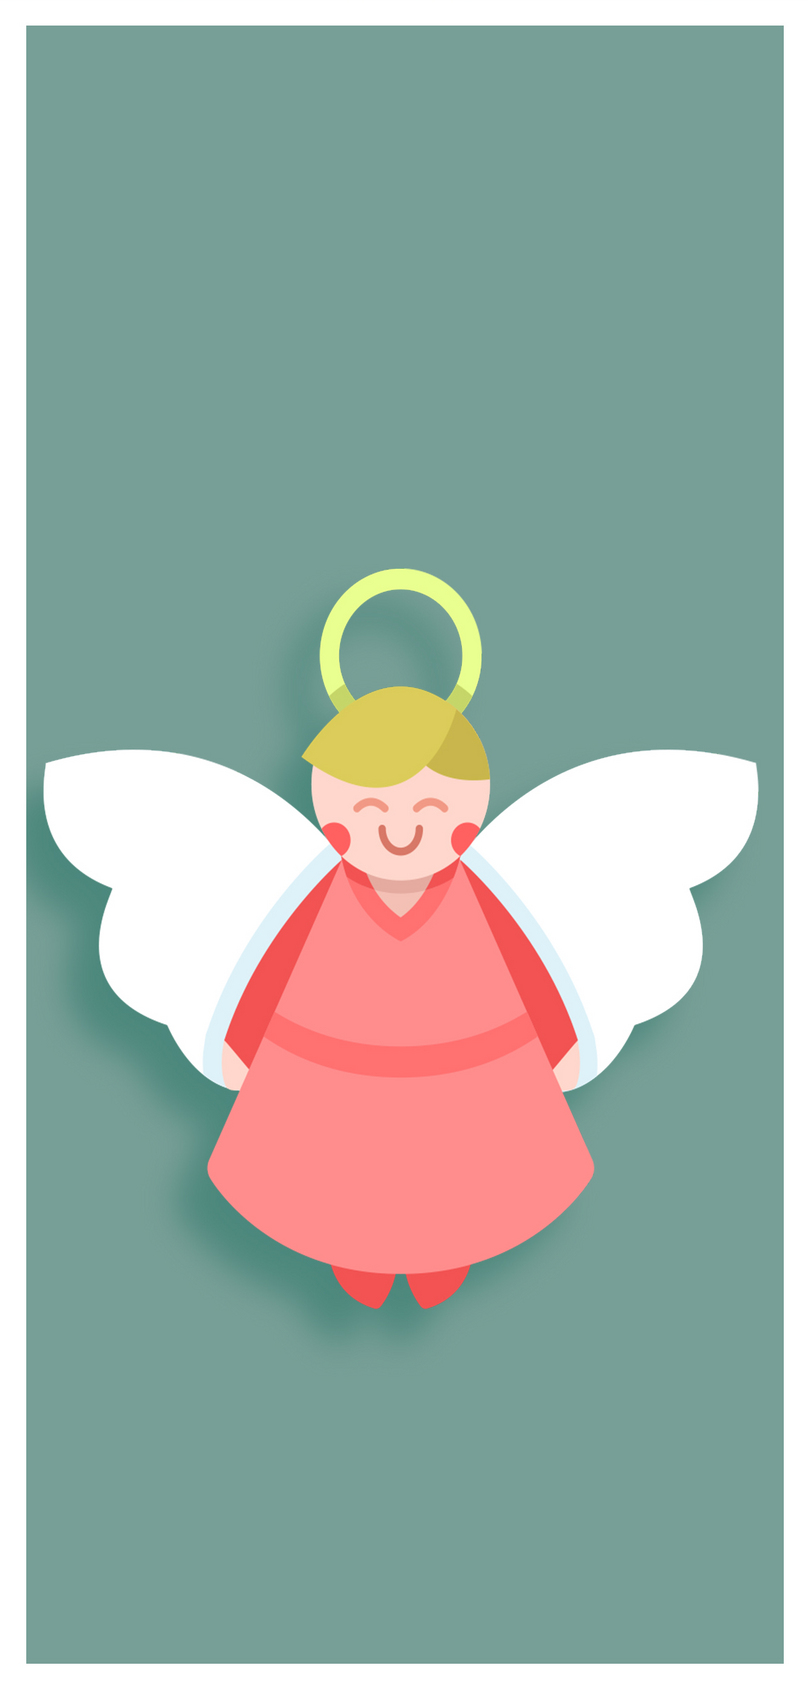 Cartoon Cute Angel Mobile Wallpaper Backgrounds Images Free